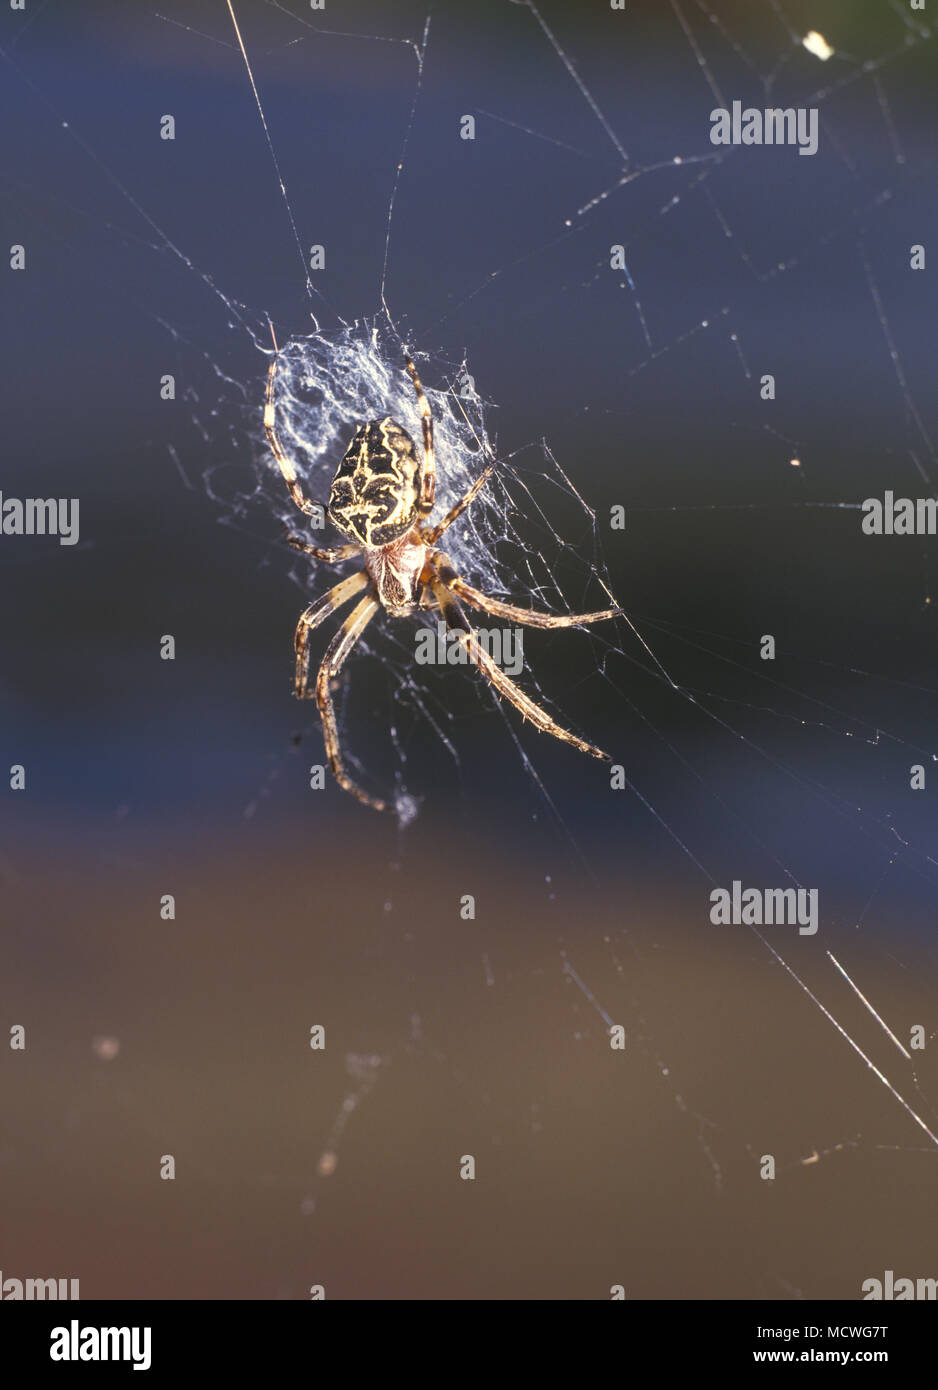 European garden spider, Araneus diadematus, on the web. The legs of orb-weaver spiders are specialized for spinning orb webs. The webs are built by - Stock Image